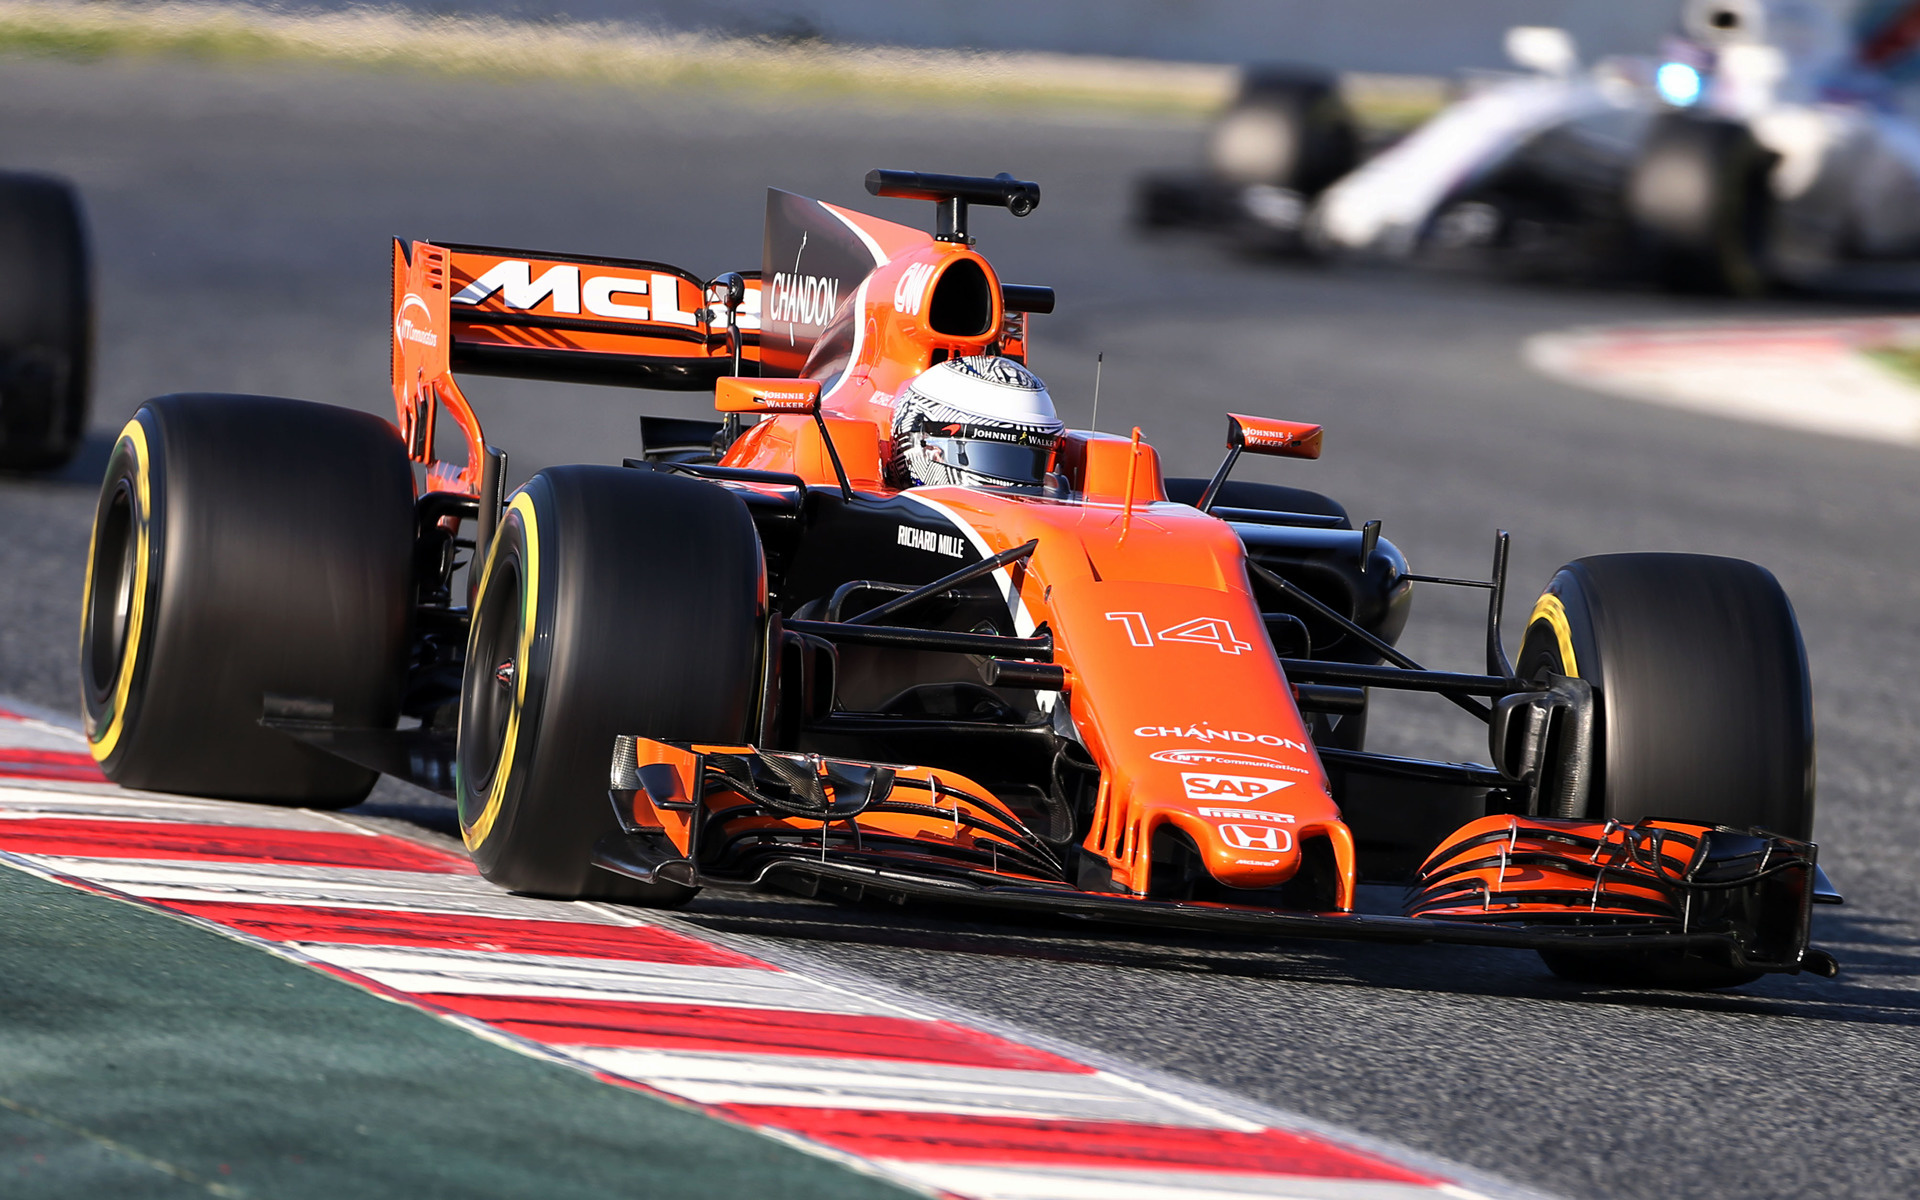 Hd Car Wallpapers Subaru Mclaren Honda Mcl32 2017 Wallpapers And Hd Images Car